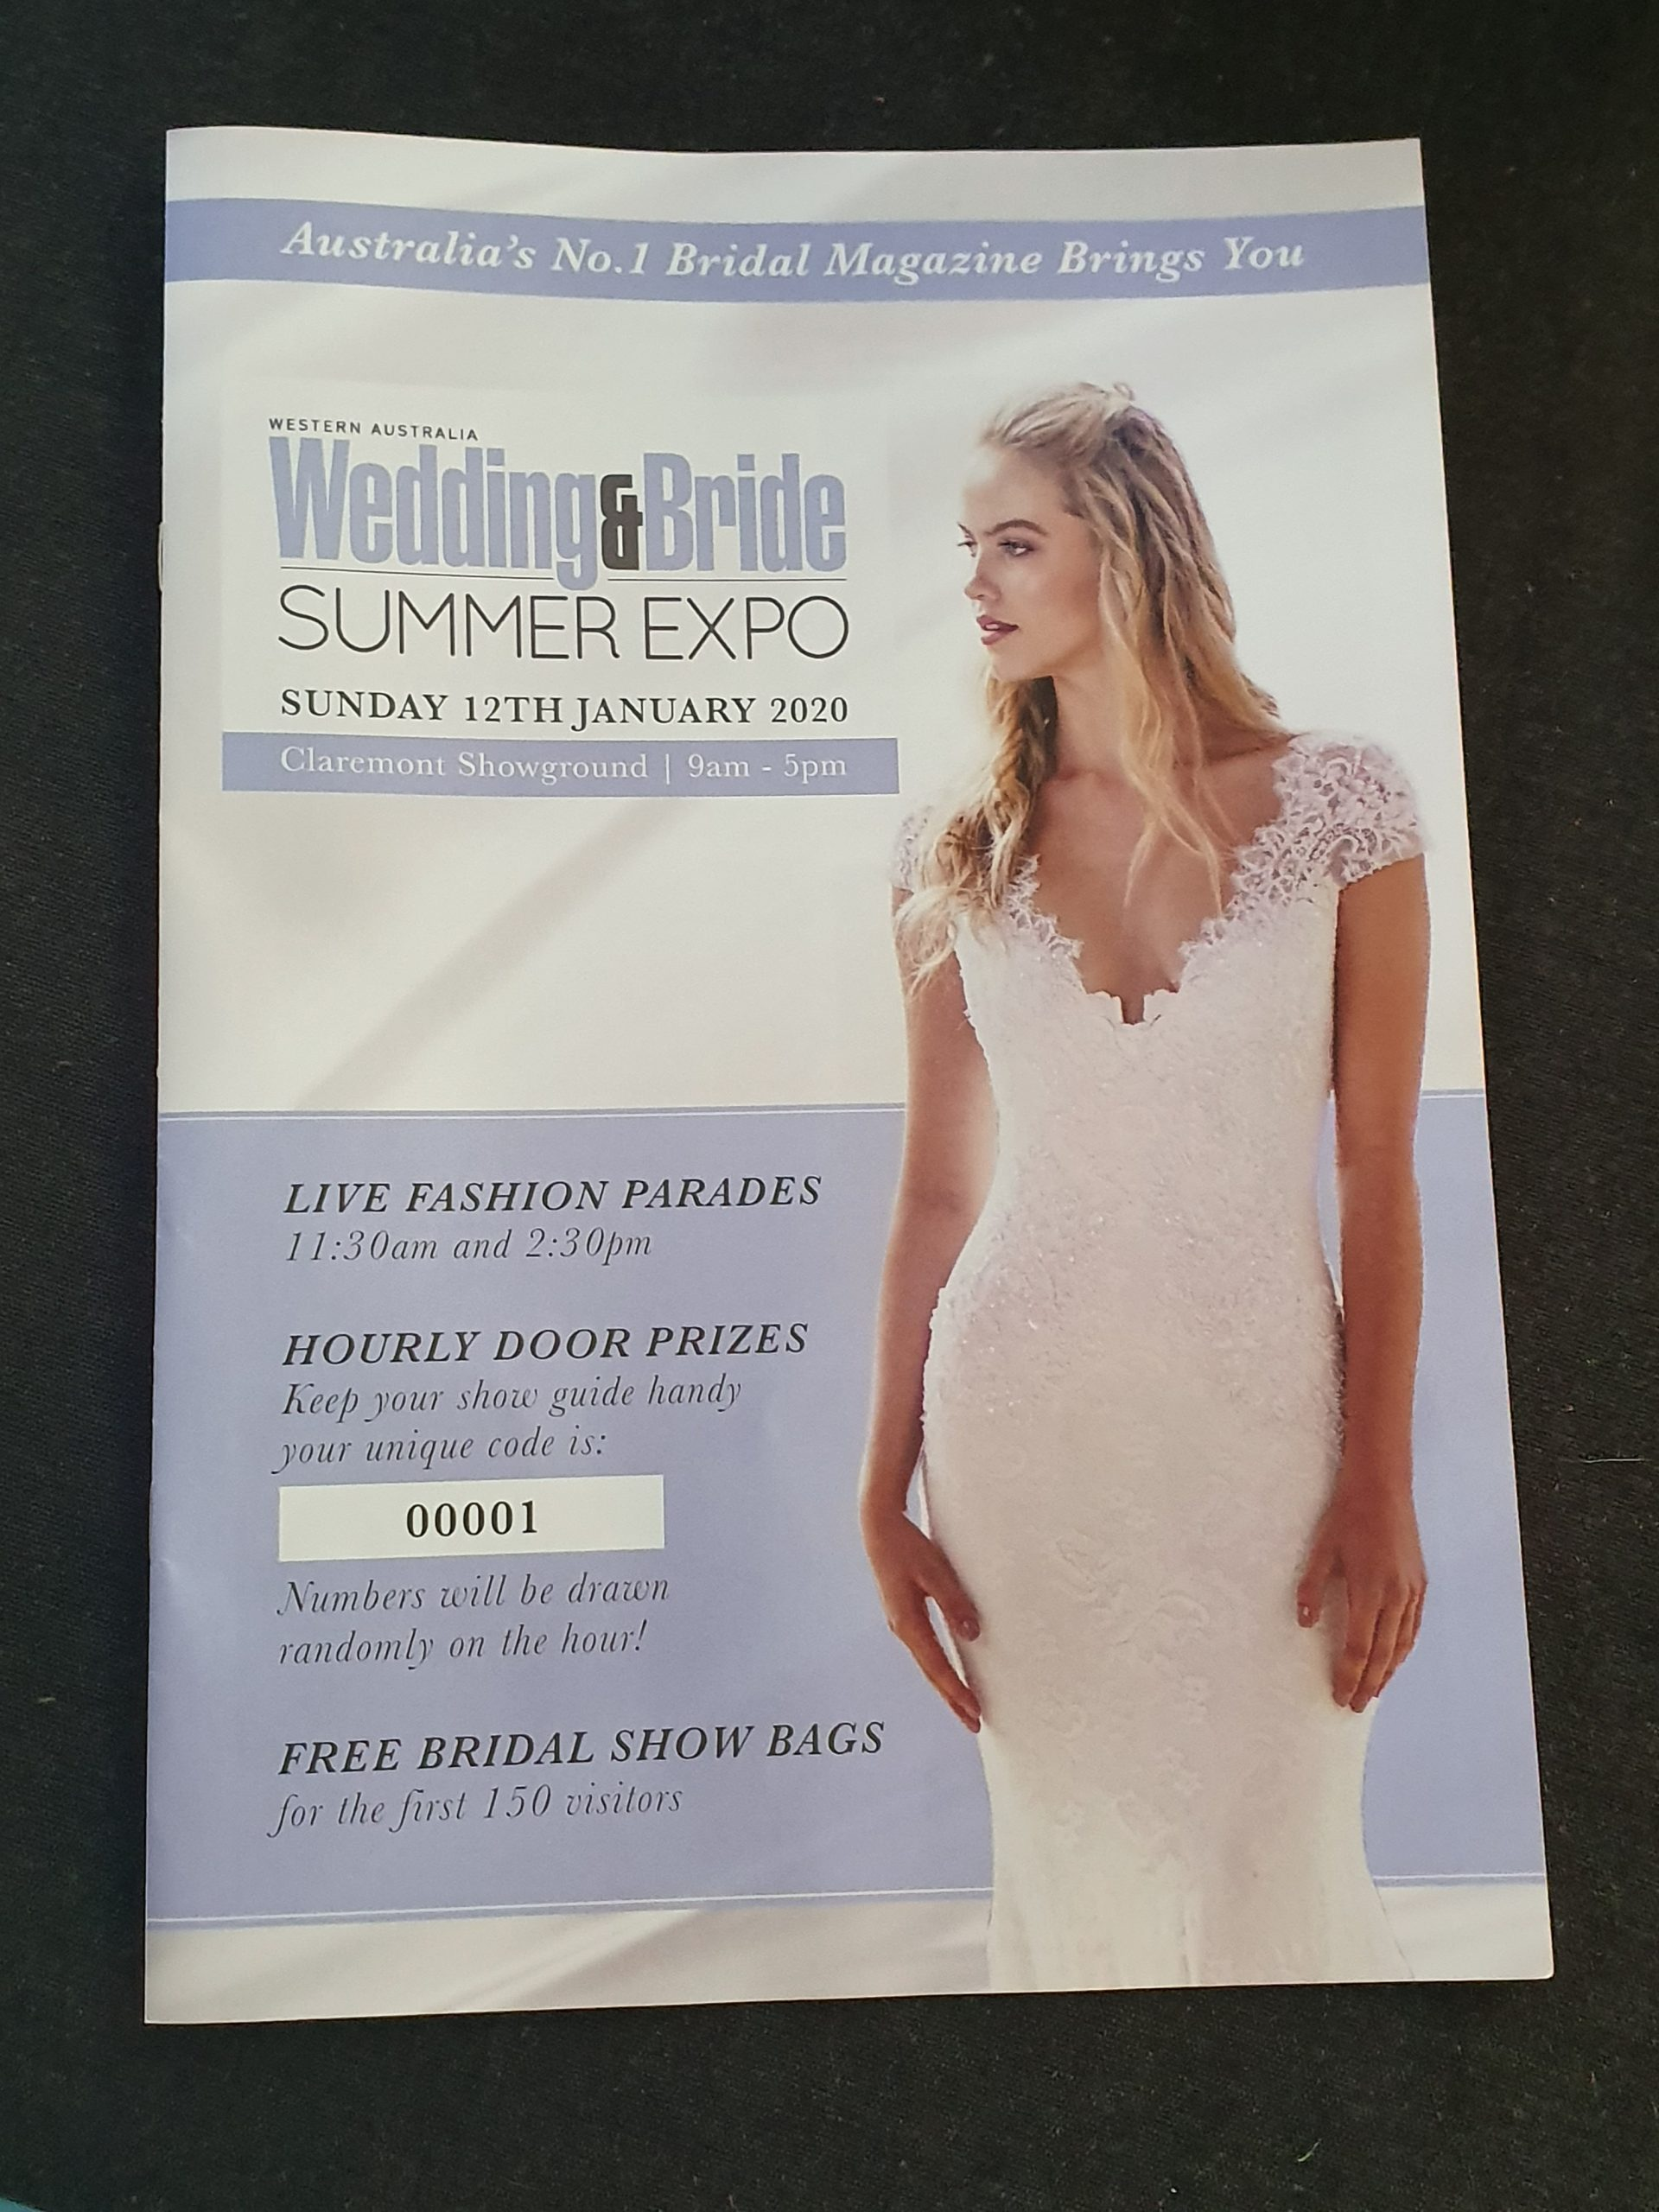 Perth Bridal Expo Marketing Attracts an Epic Crowd